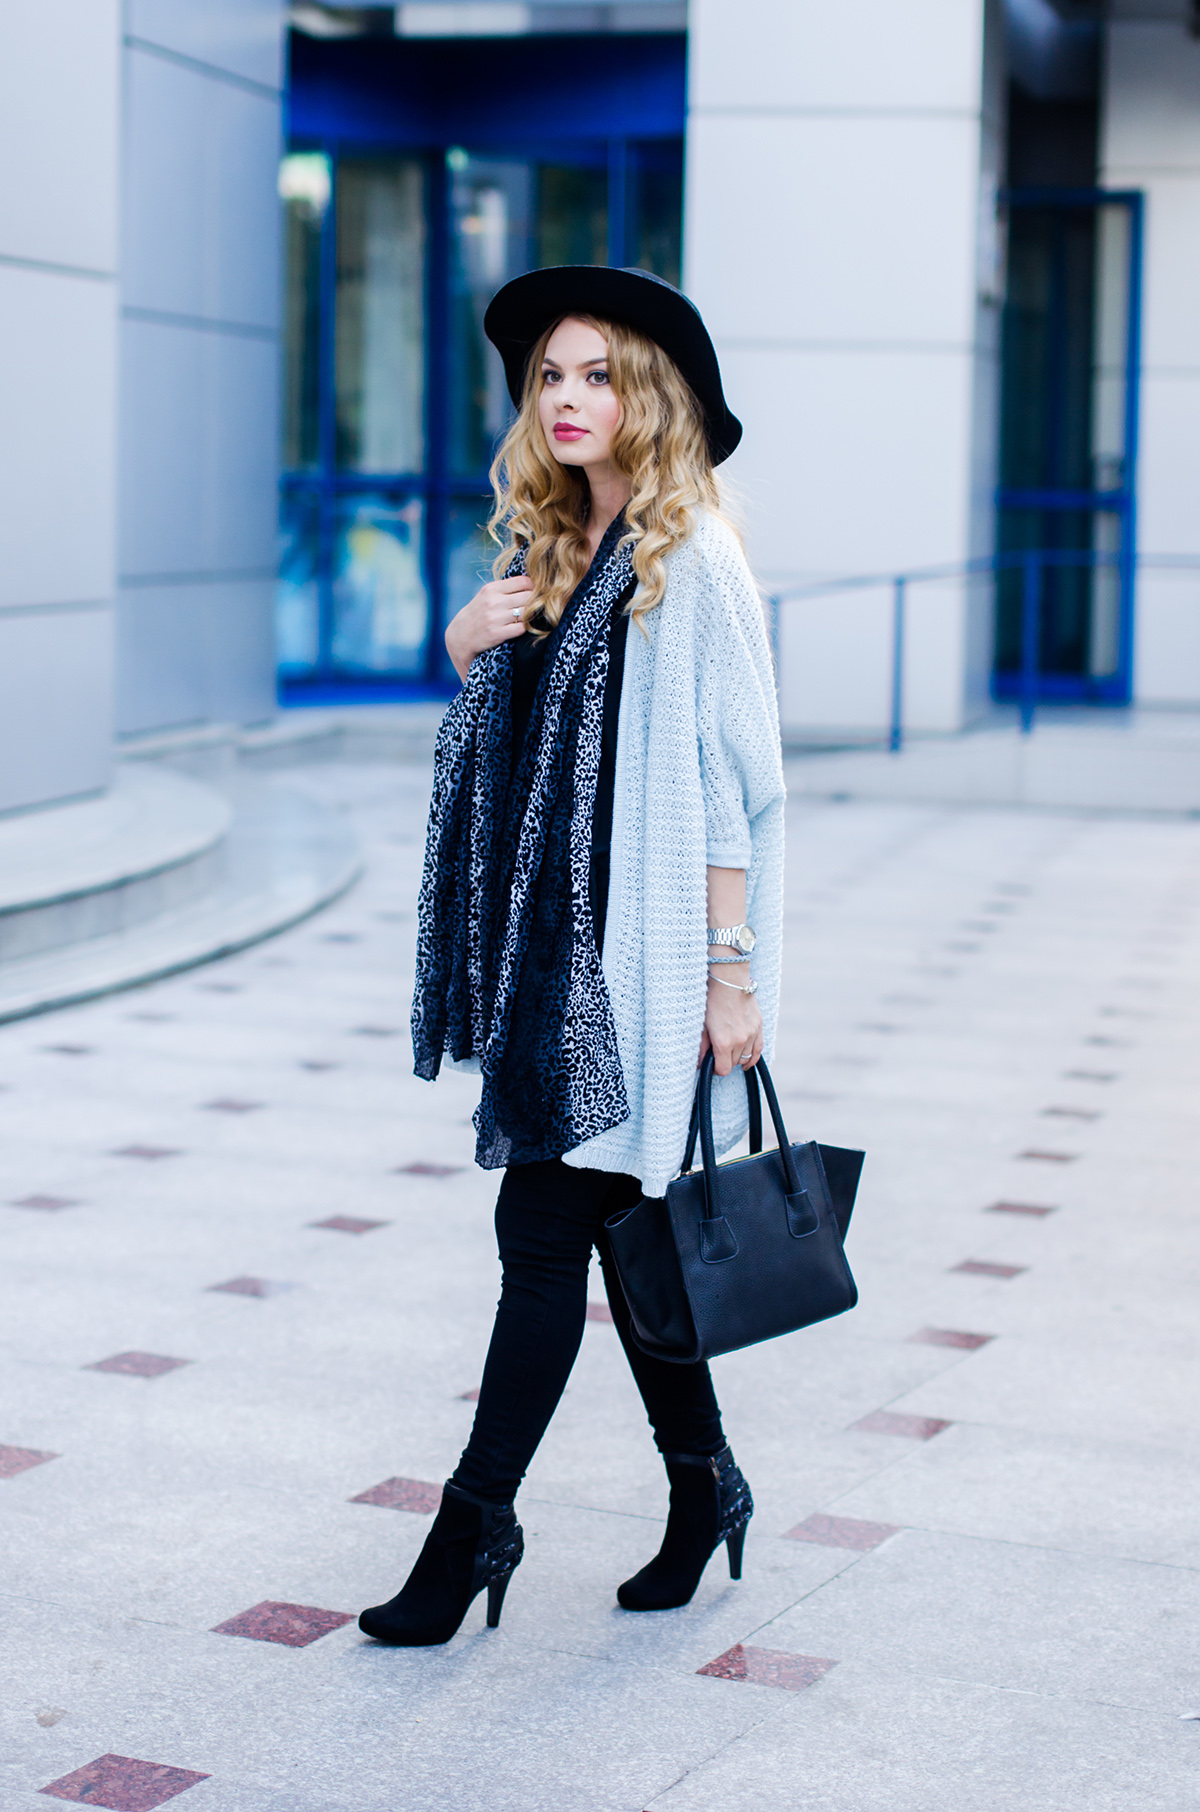 vero-moda-blue-fluffy-cardigan-black-outfit-hat-curls (4)